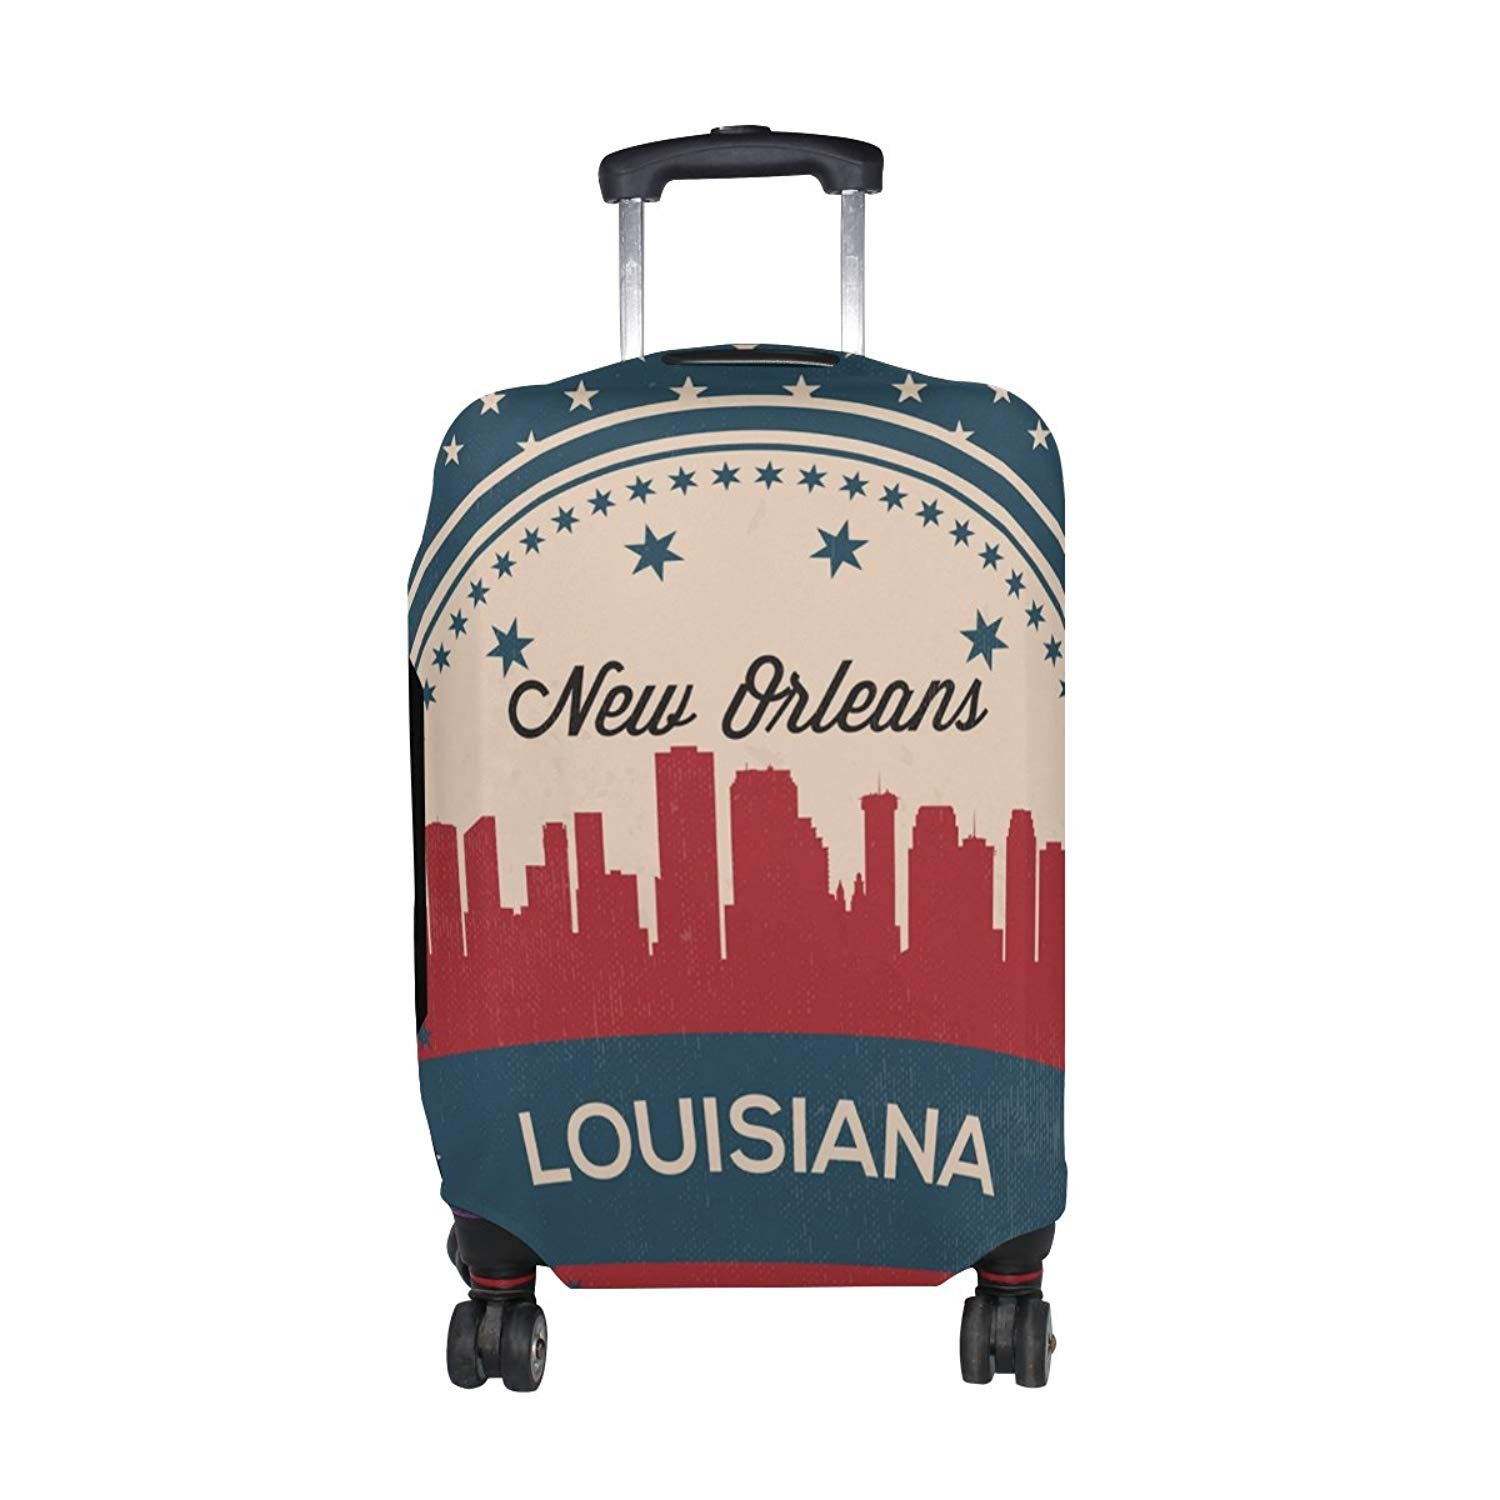 Vintage American Flag Louisiana State New Orleans Skyline Luggage Cover Travel Suitcase Protector Fits 18-21 Inch Luggage